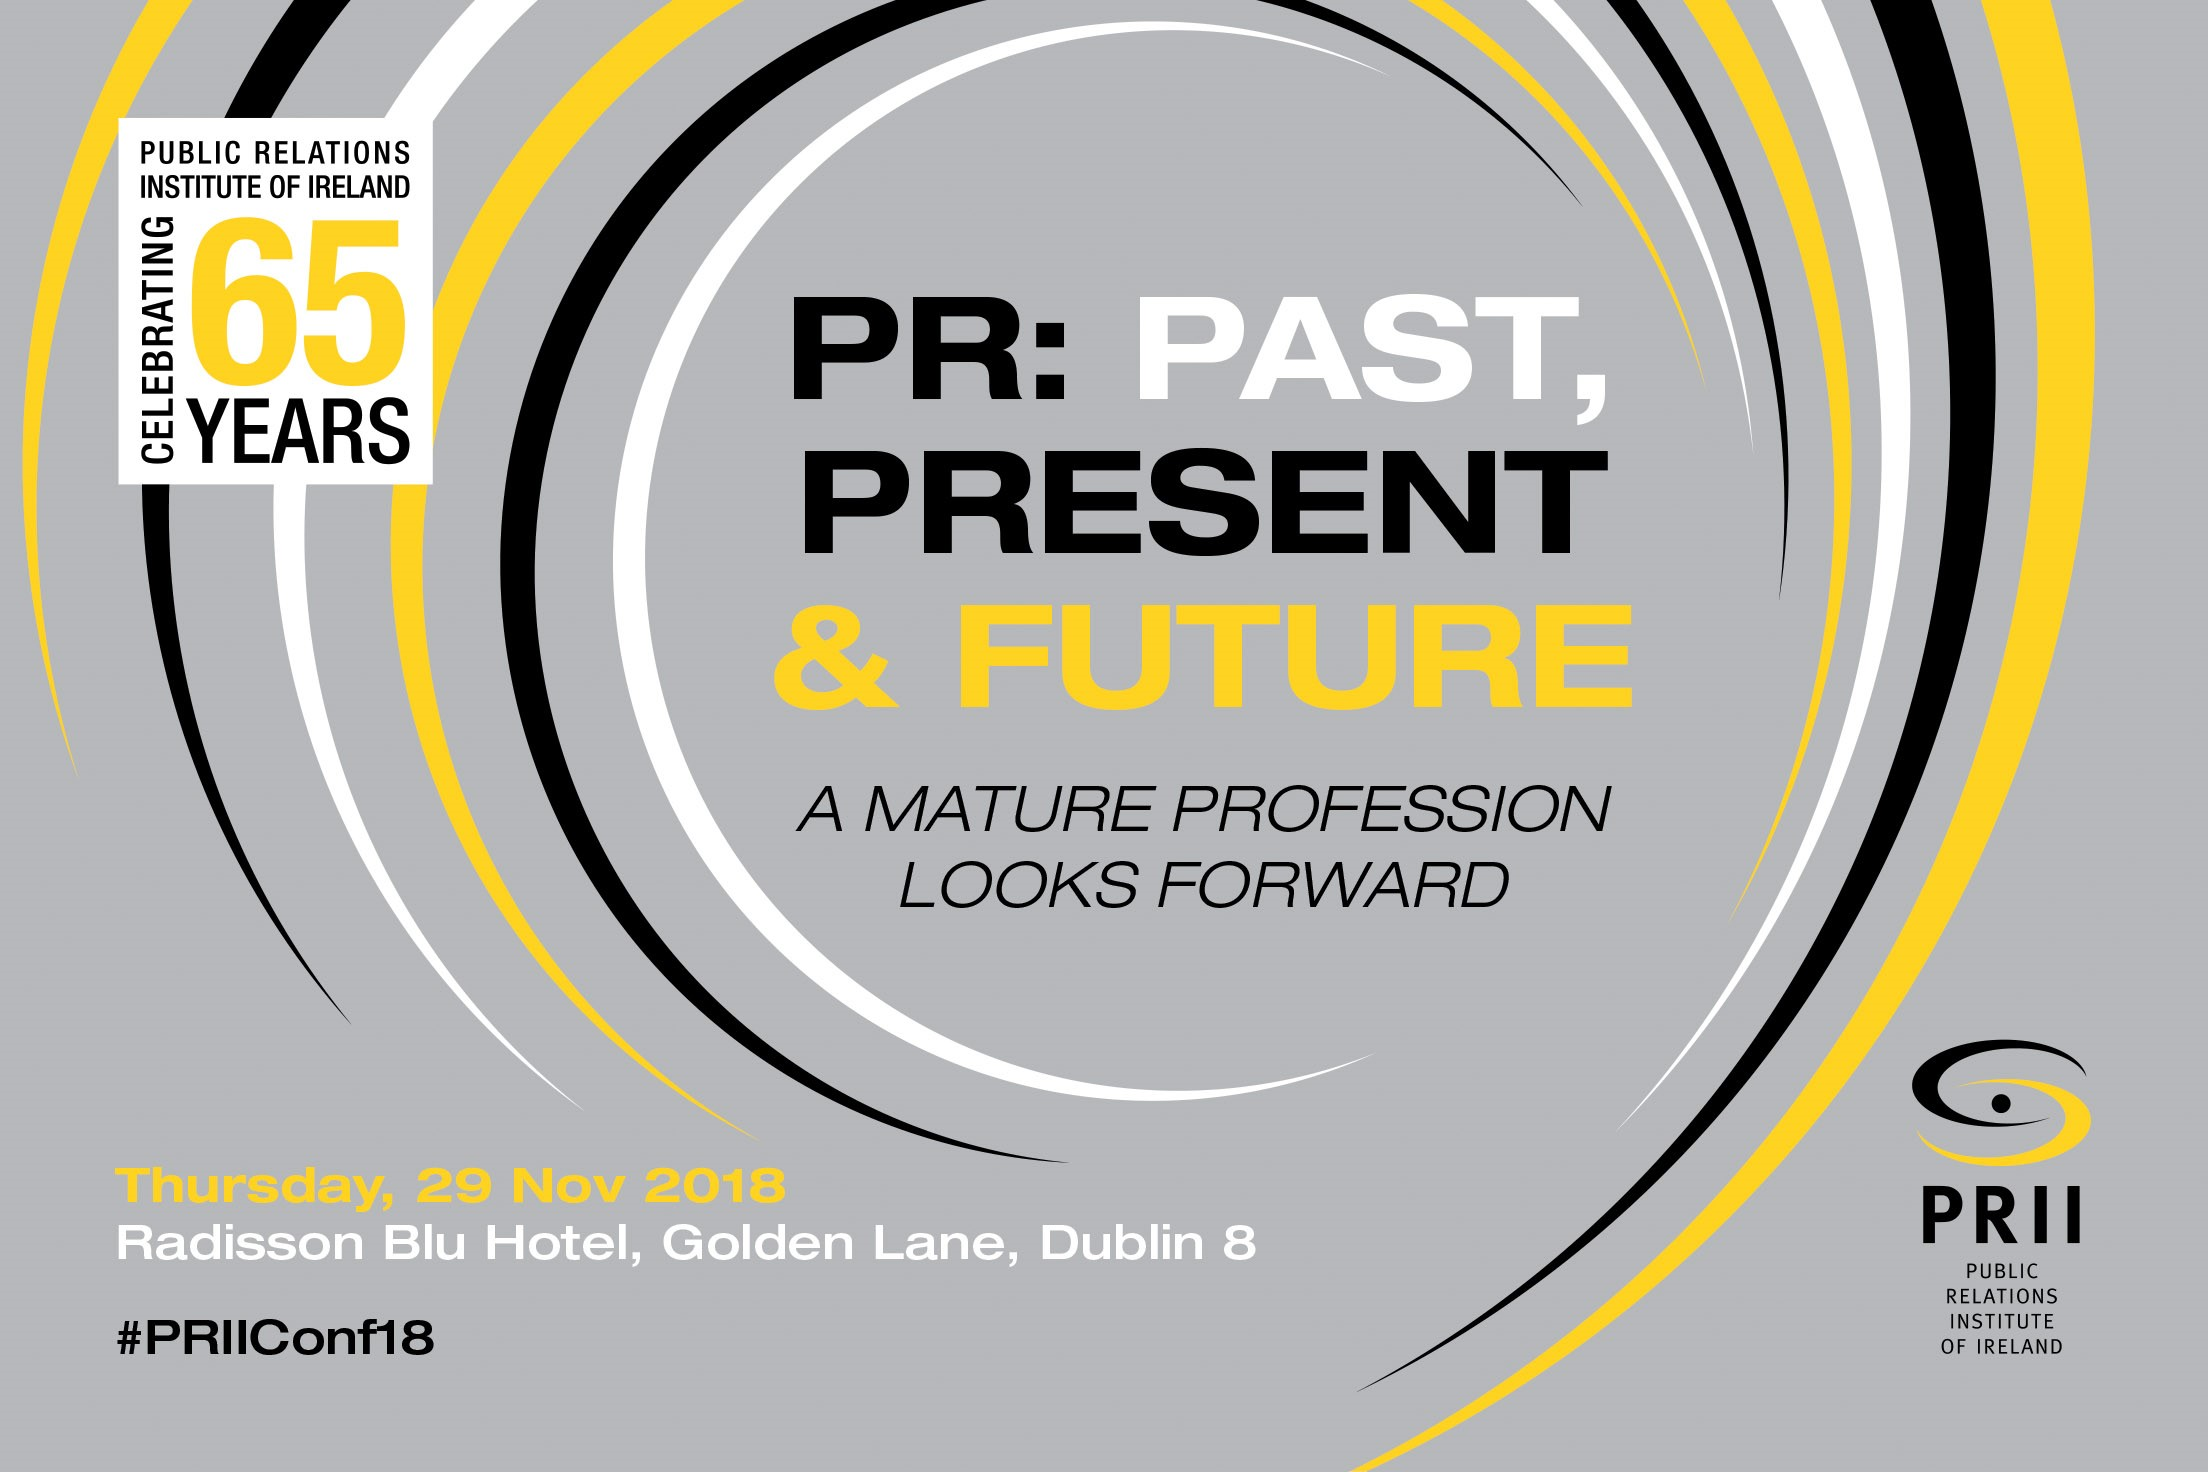 PRII PRII Diploma in Public Relations - Ireland's premier professional qualification in PR & Communications www.prii.ie/diploma